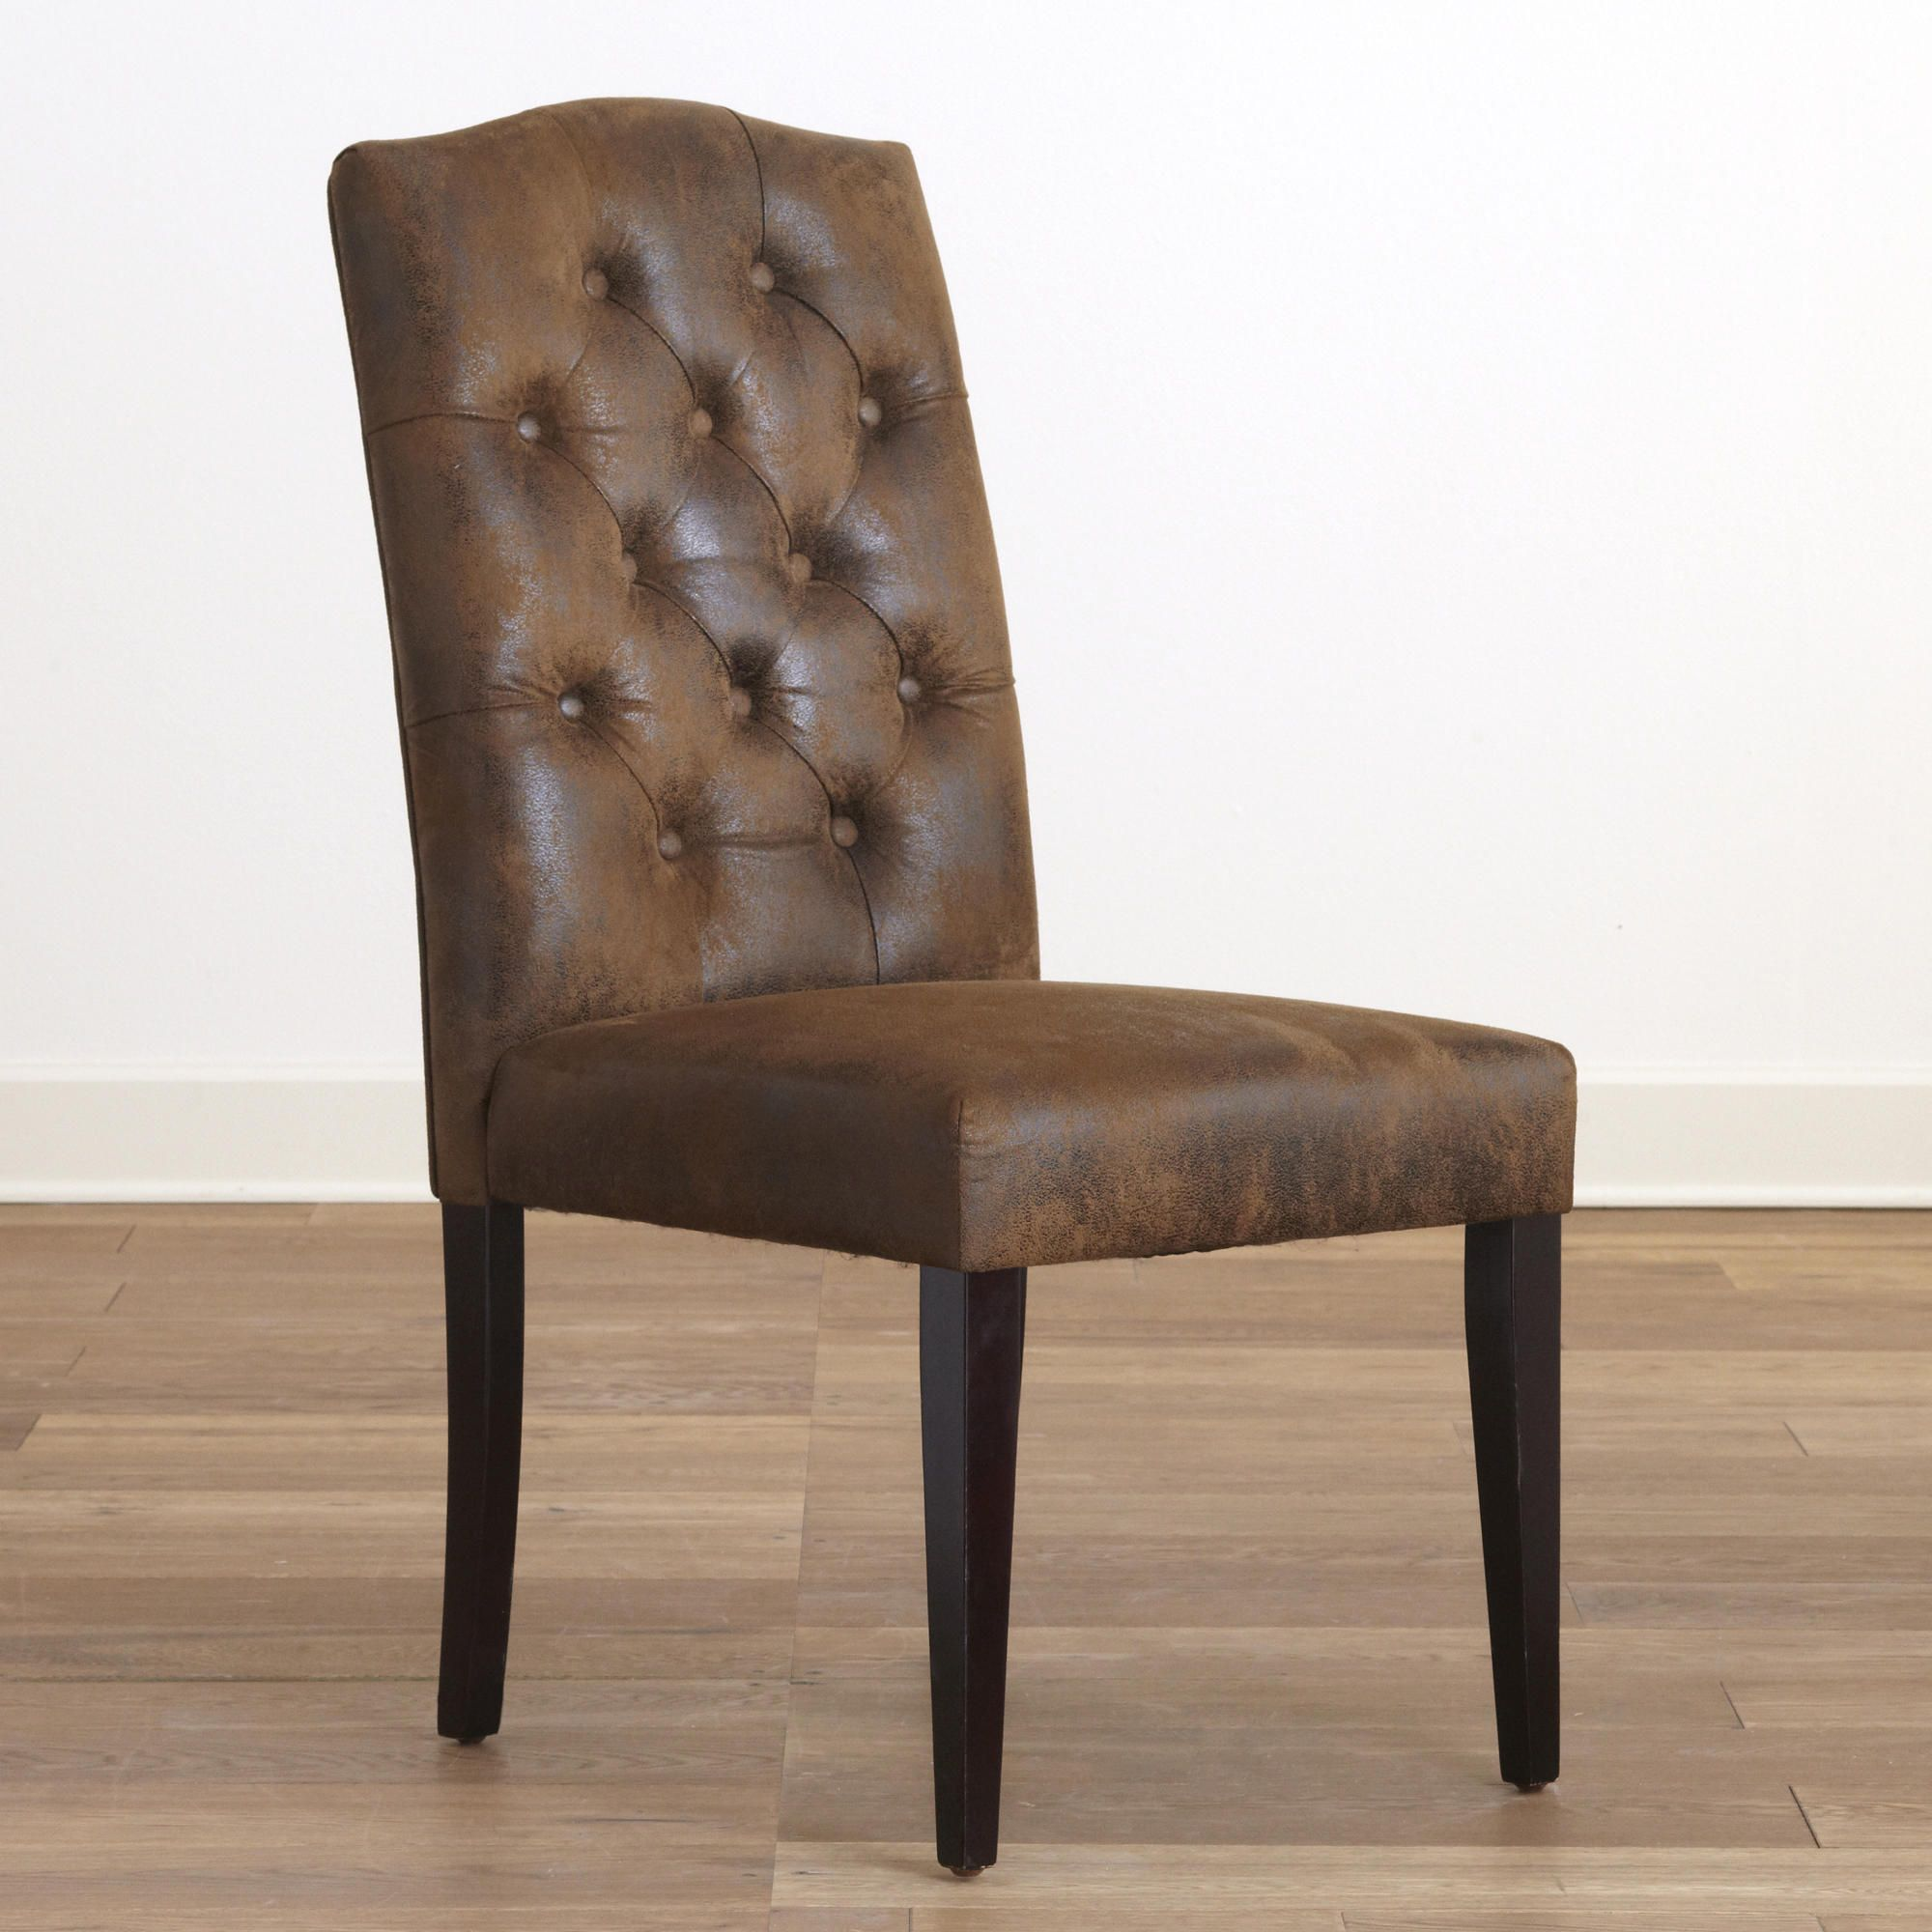 Leather Tufted Dining Chair Desk In Kitchen Microfiber Set Of 2